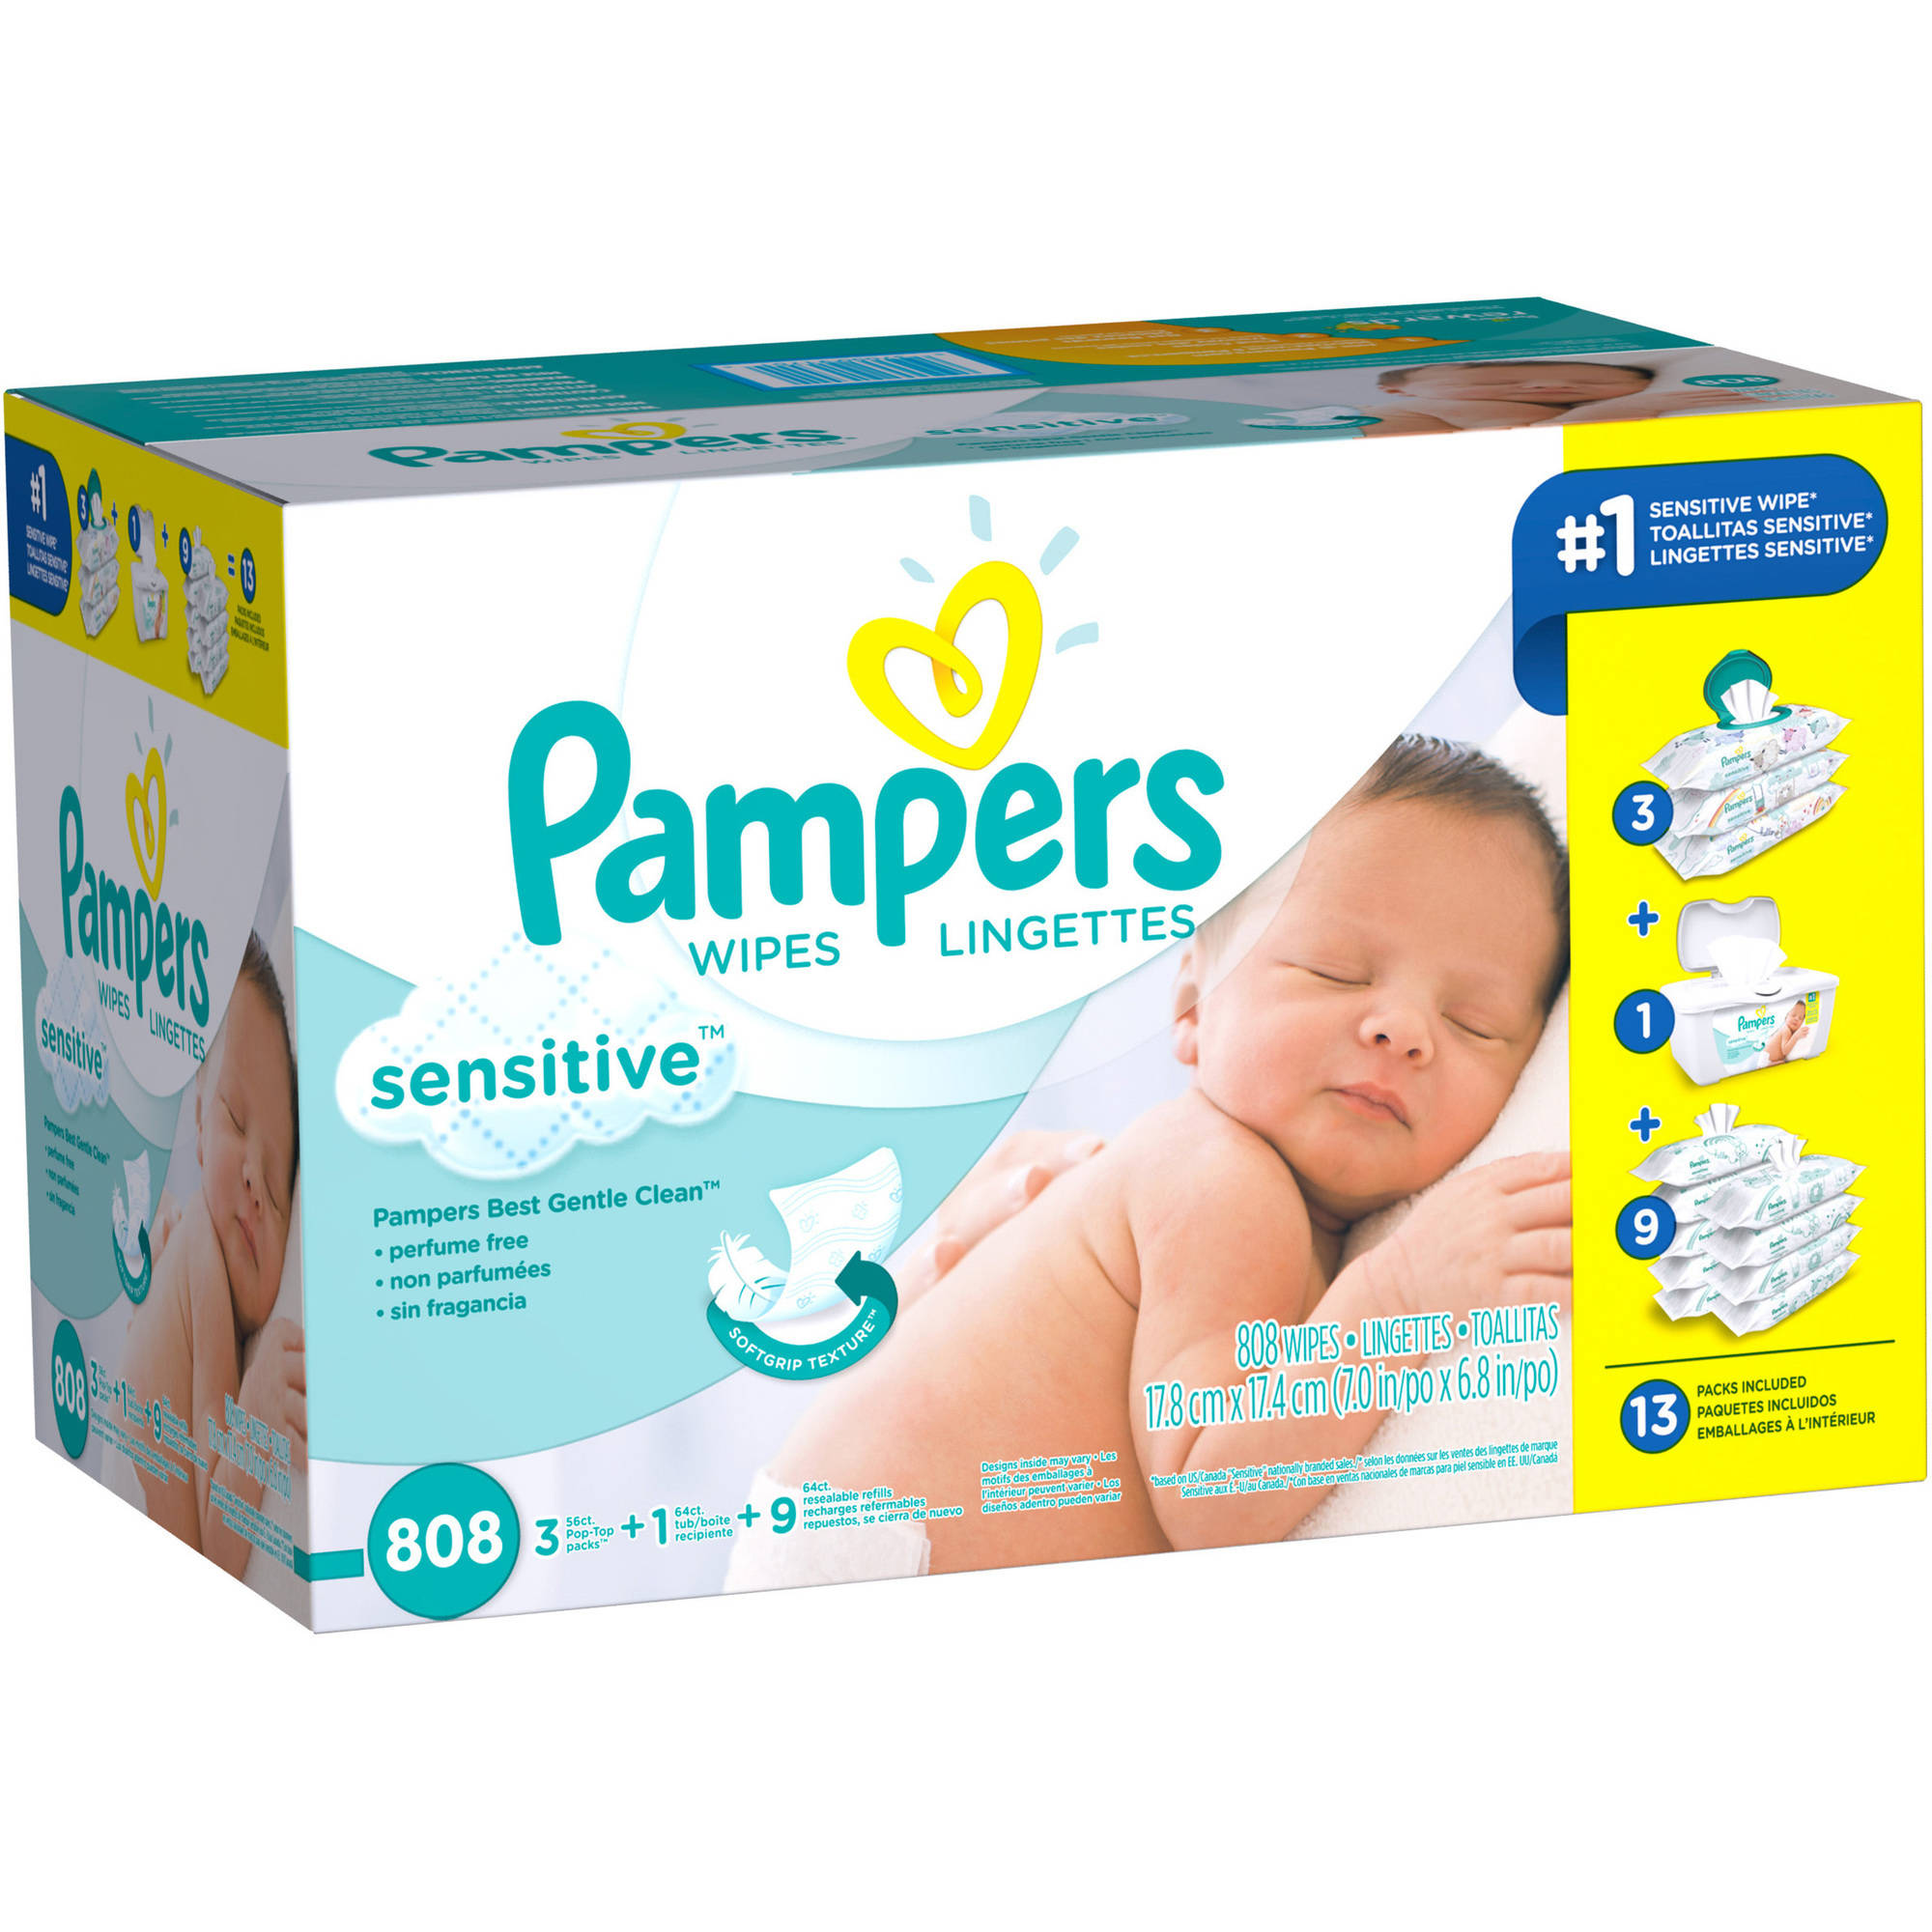 Pampers Sensitive Baby Wipes Multipack, 808 sheets